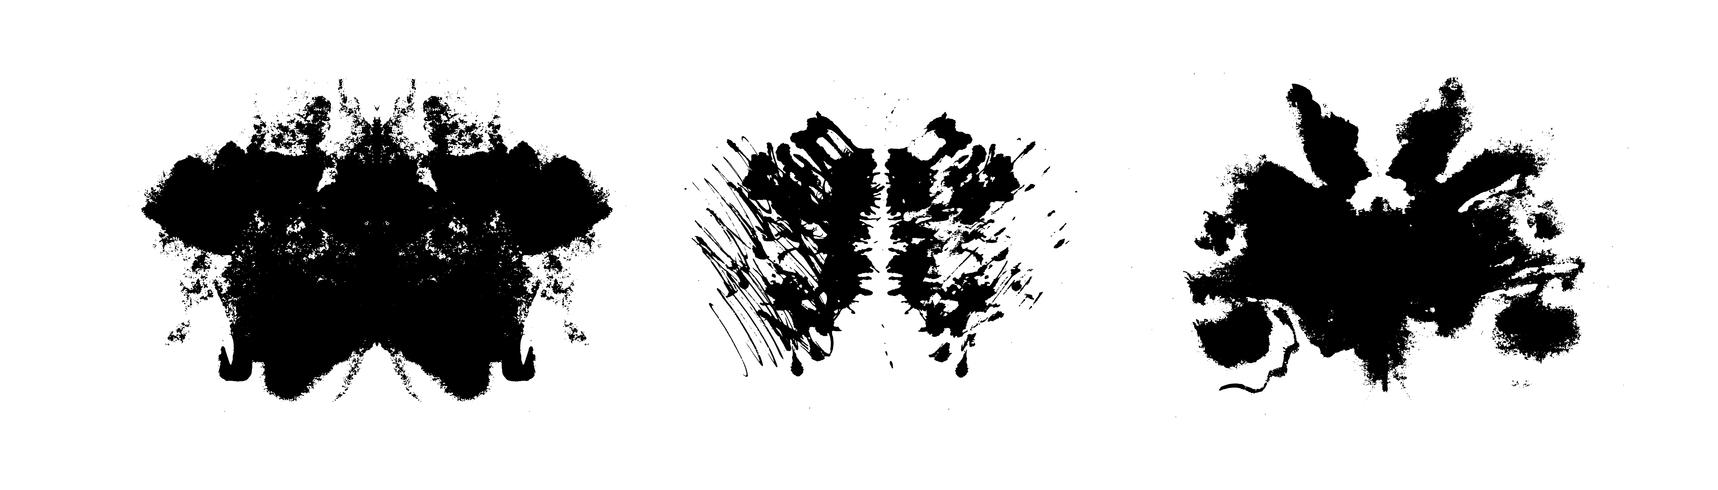 Rorschach inkblot test symmetrical abstract ink stains